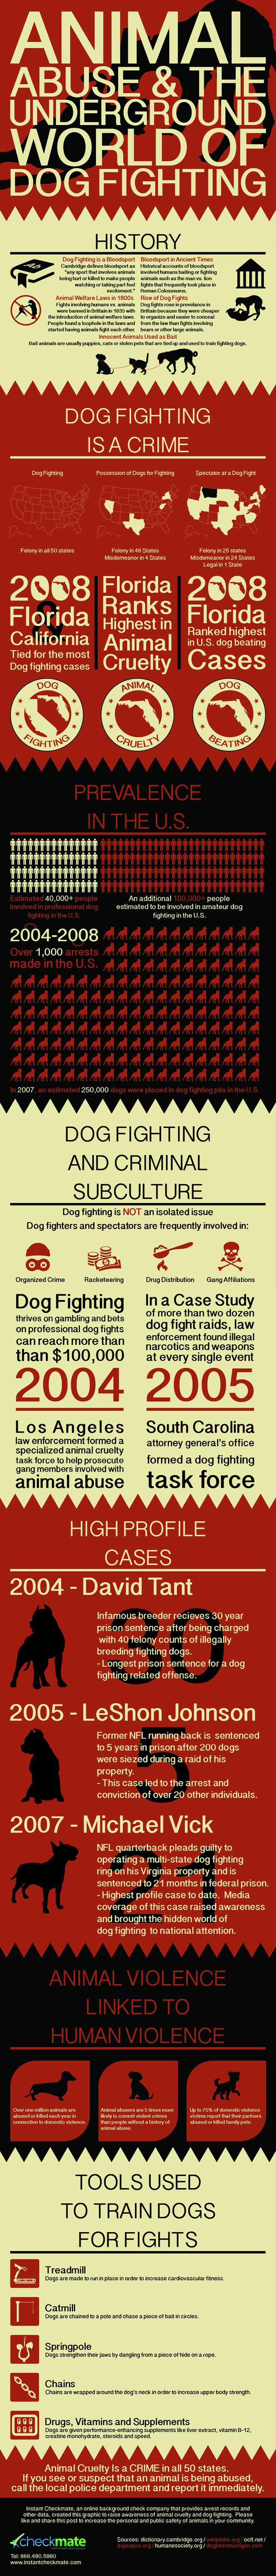 End animal abuse. Dog fighting is a FELONY in all 50 states. Be their voice.